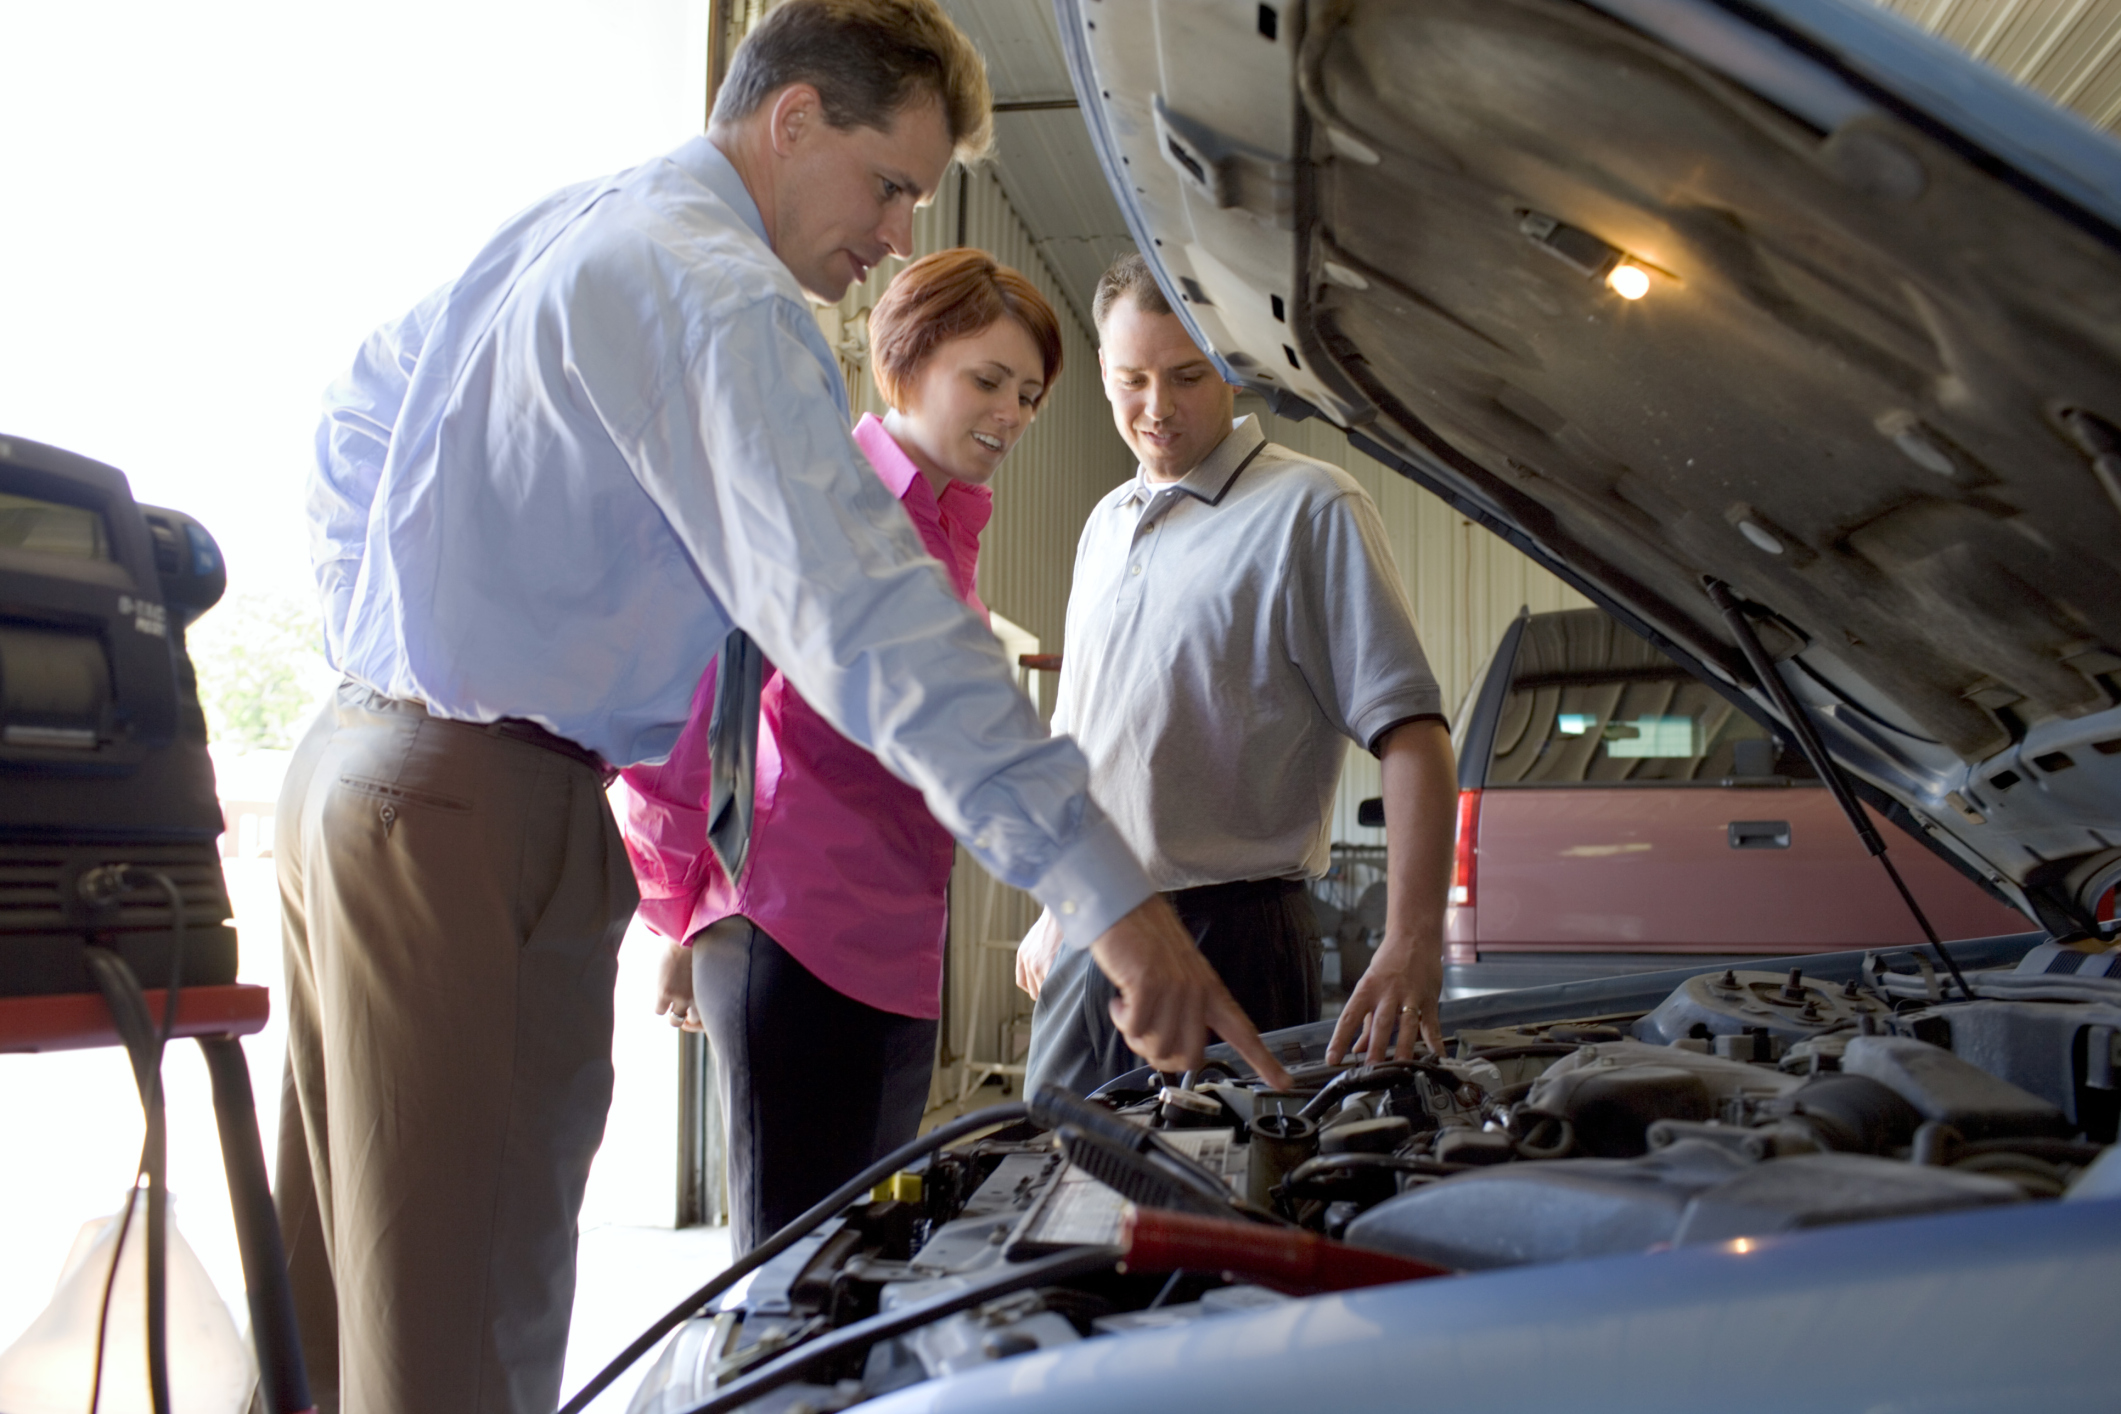 Buying A Used Car Inspirational New Versus Used Bud Ing Tips On Ing A Car